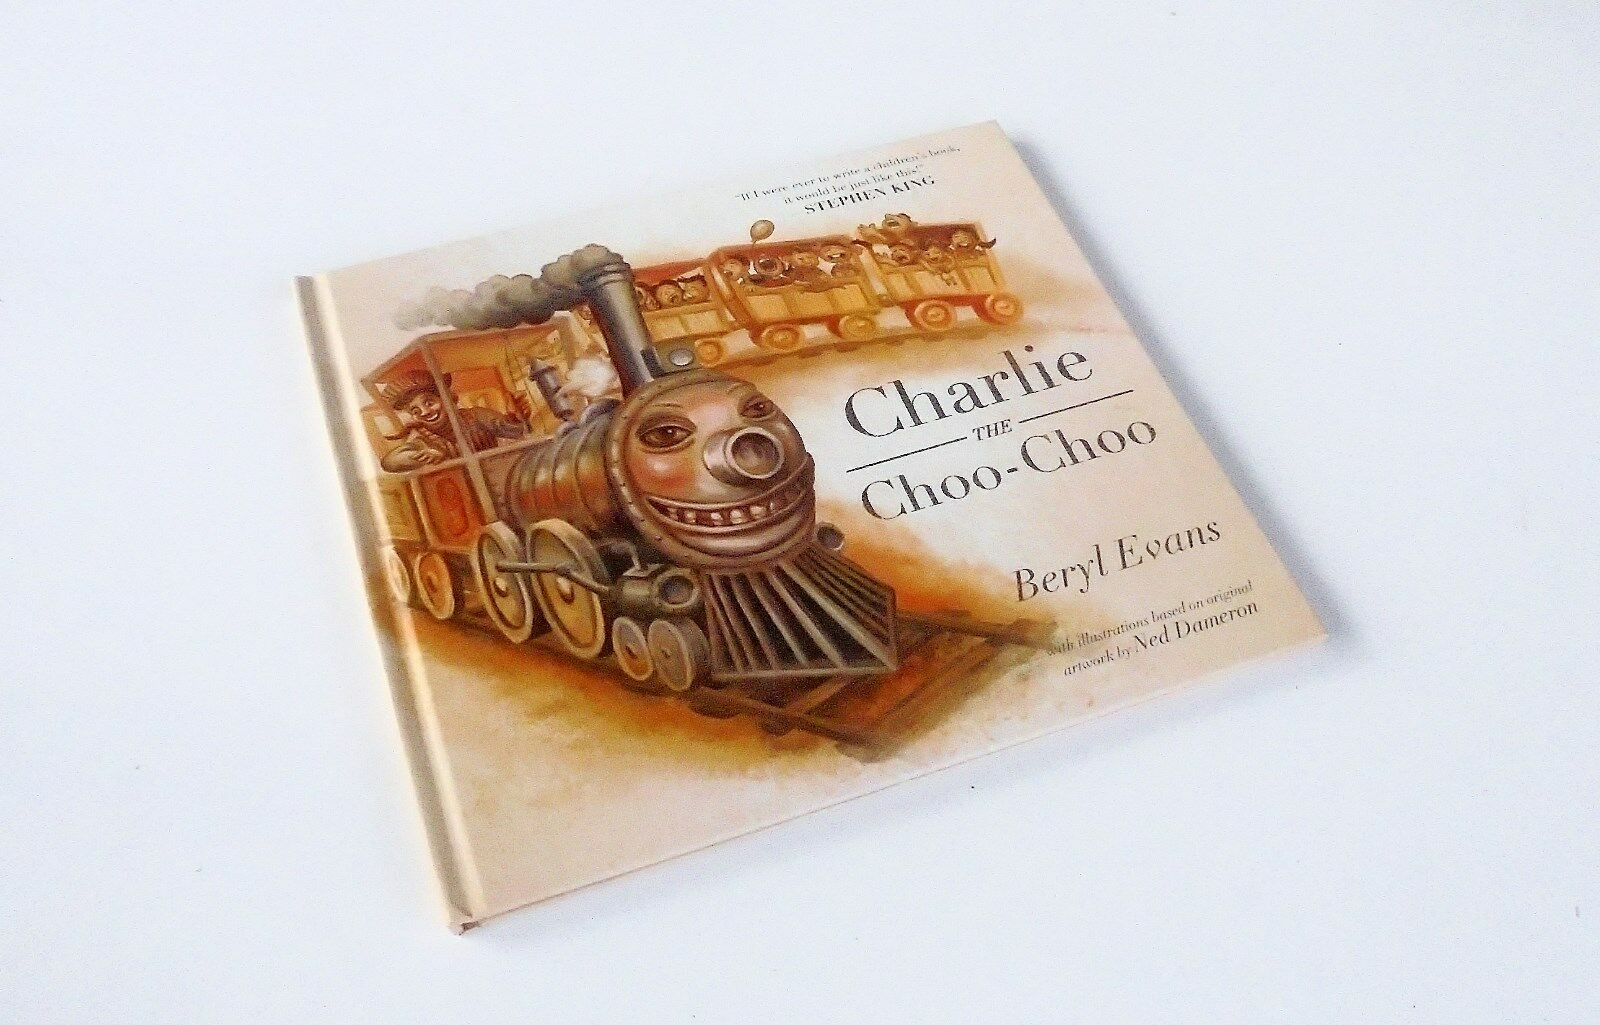 Charlie the Choo-Choo: From The World Of The Dark Tower by Stephen King (2016)